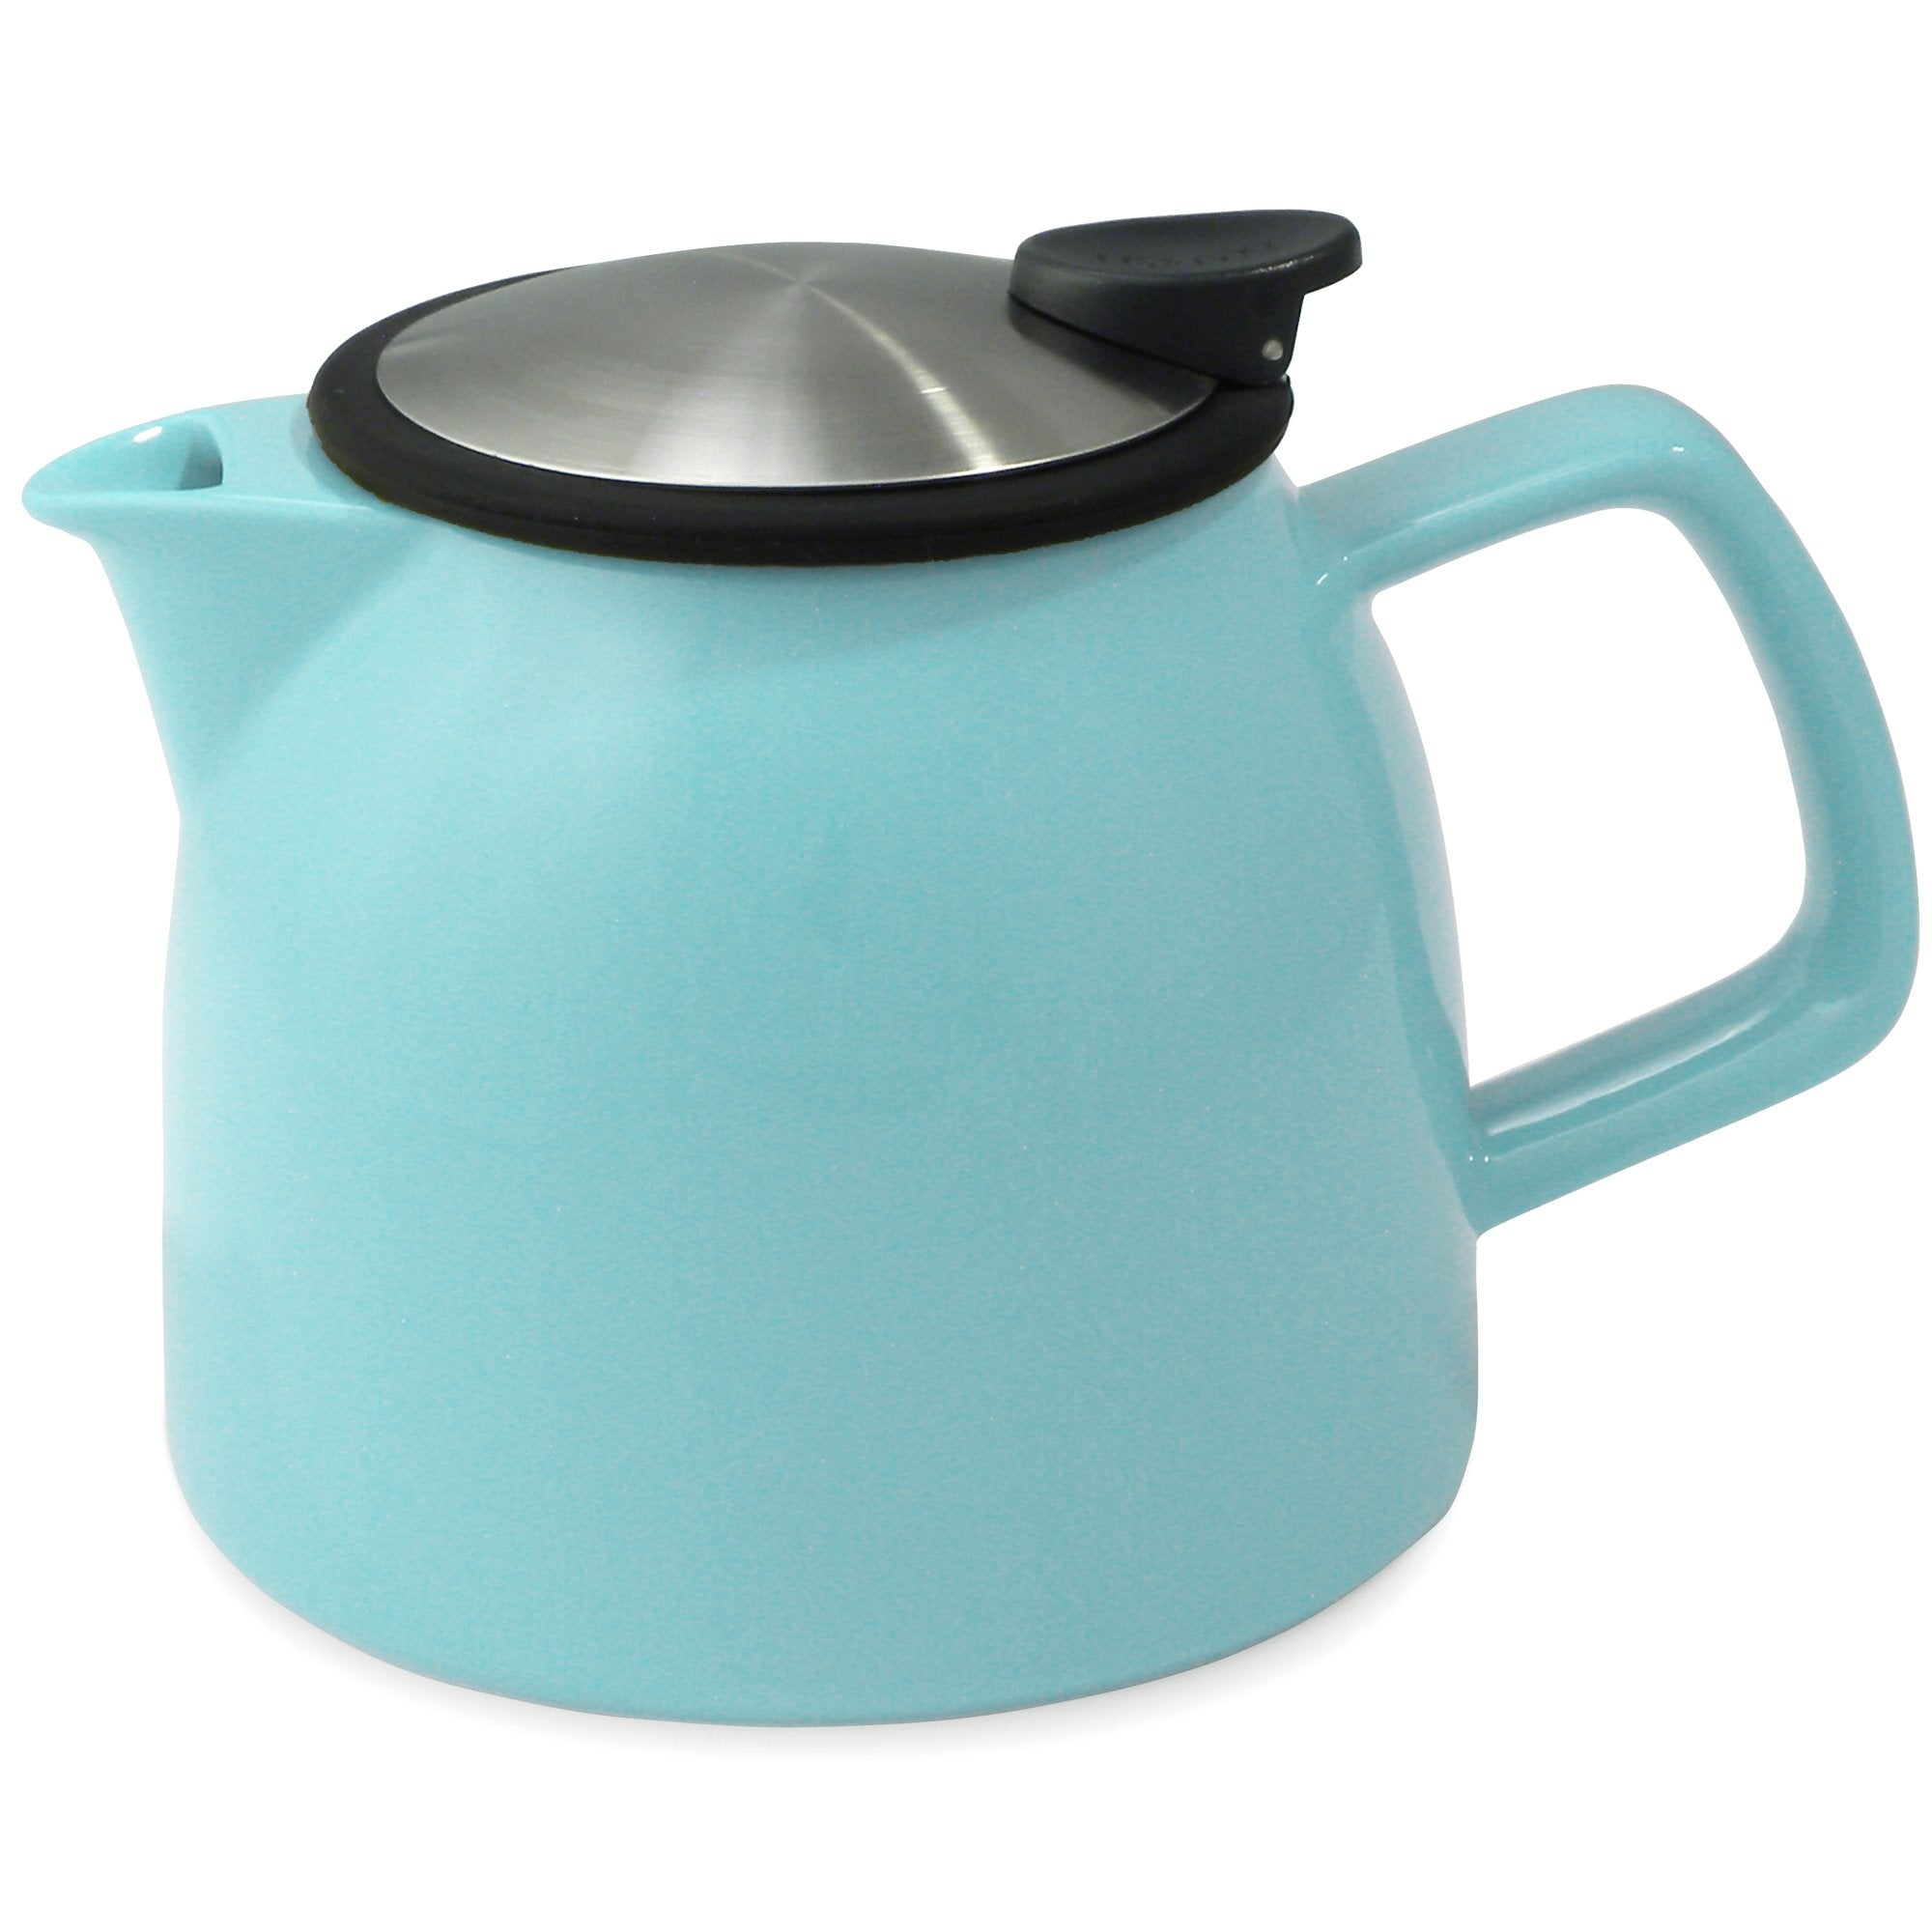 Tealula 26 oz bell-shaped turquoise teapot with square handle and black and silver detachable push-on-lid